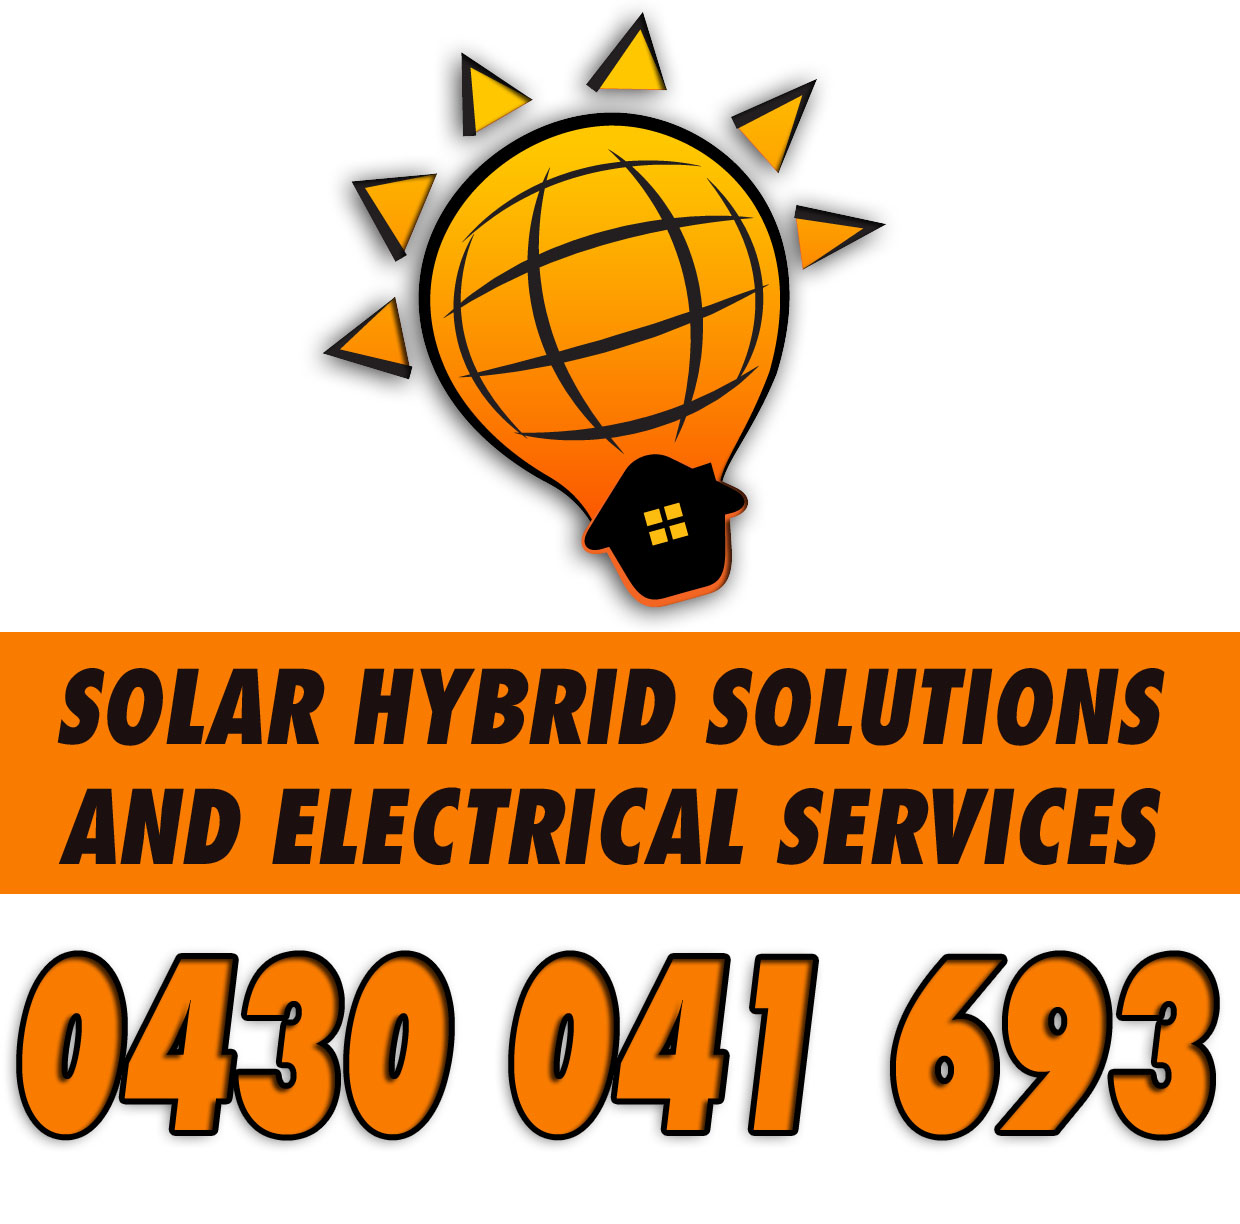 Solar Hybrid Solutions and Electrical Services